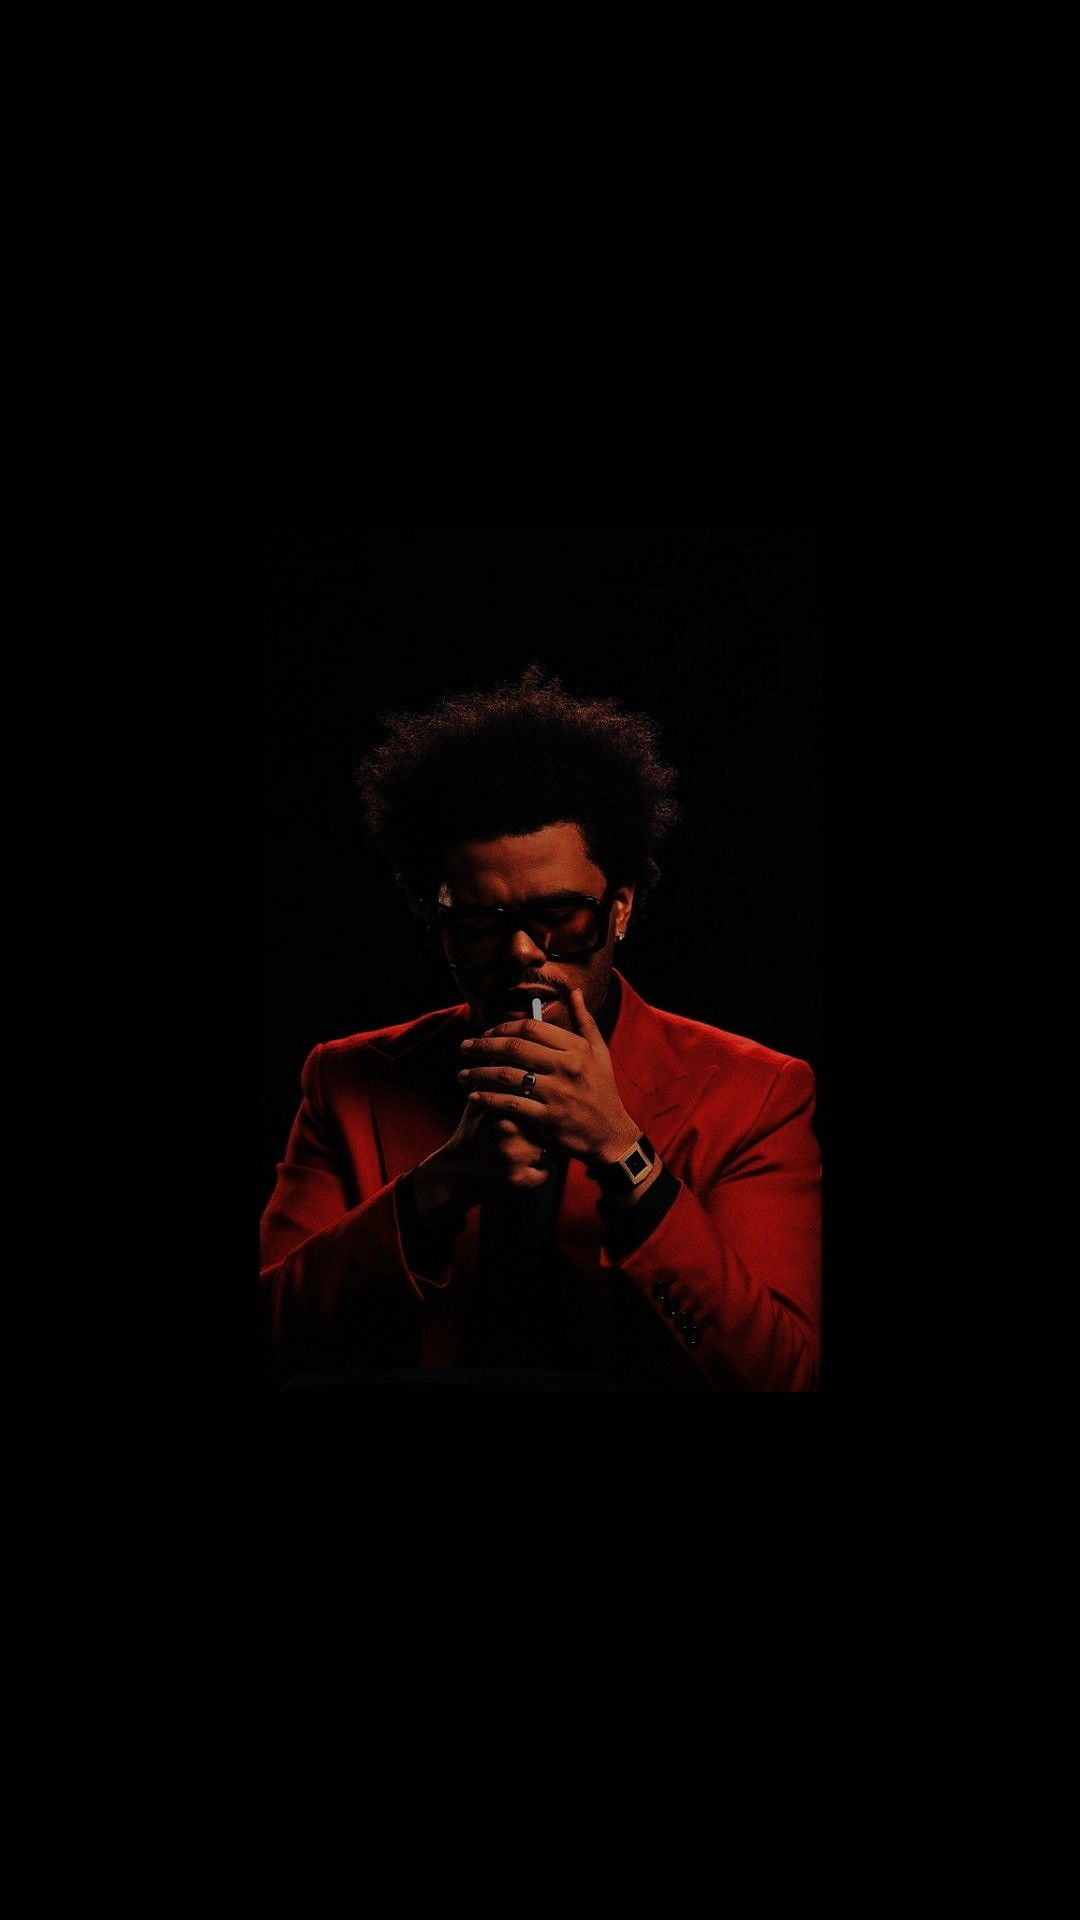 The Weeknd The Weeknd Background The Weeknd Poster The Weeknd Album Cover